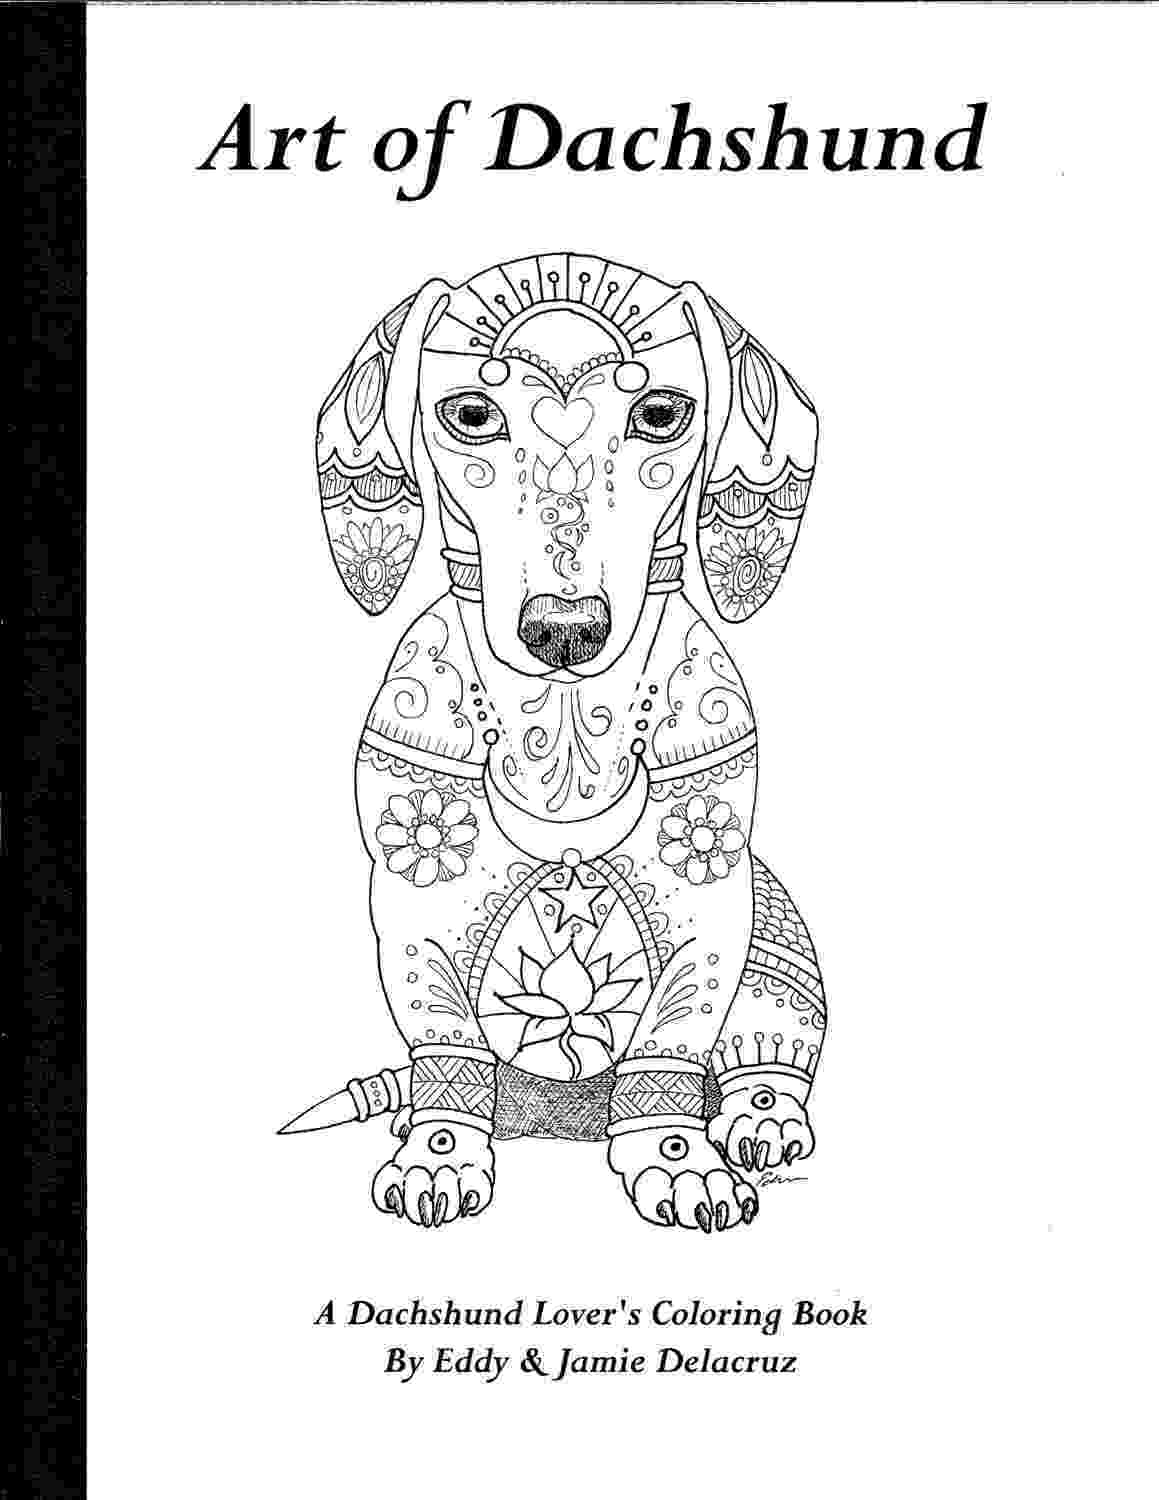 dachshund coloring pages art of dachshund single coloring page coloring pages dachshund